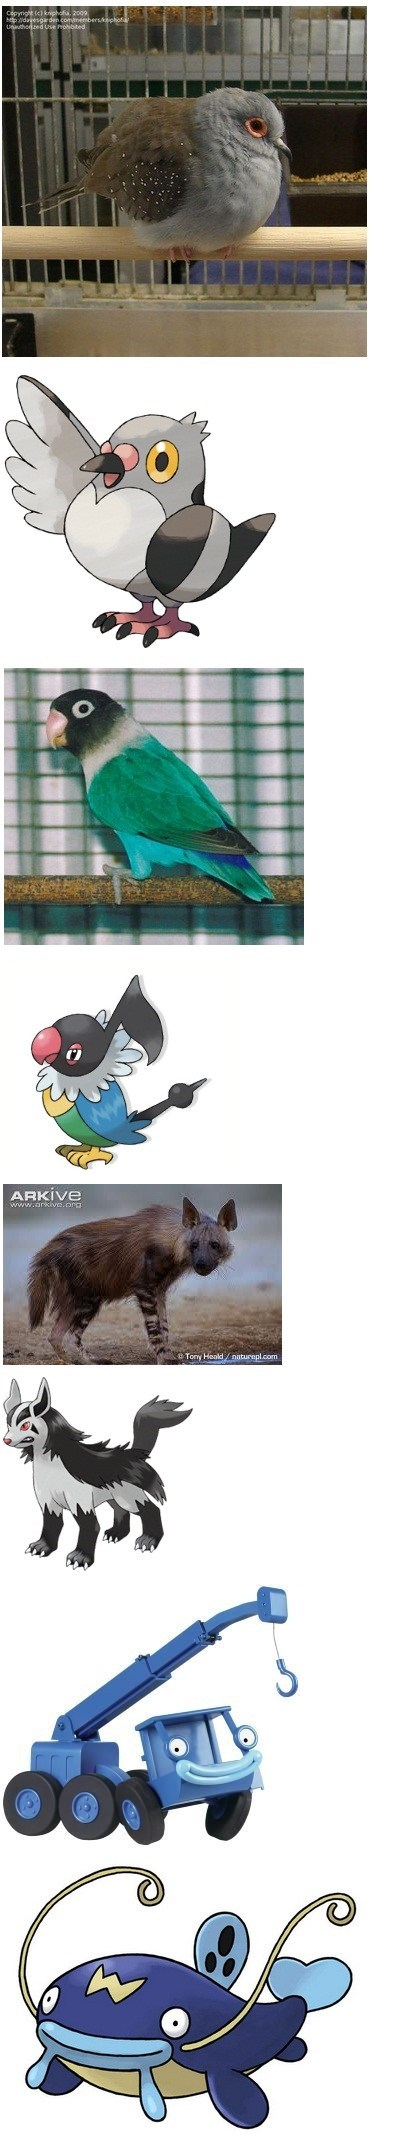 Trying to Find the Animal a Pokémon is Based On...